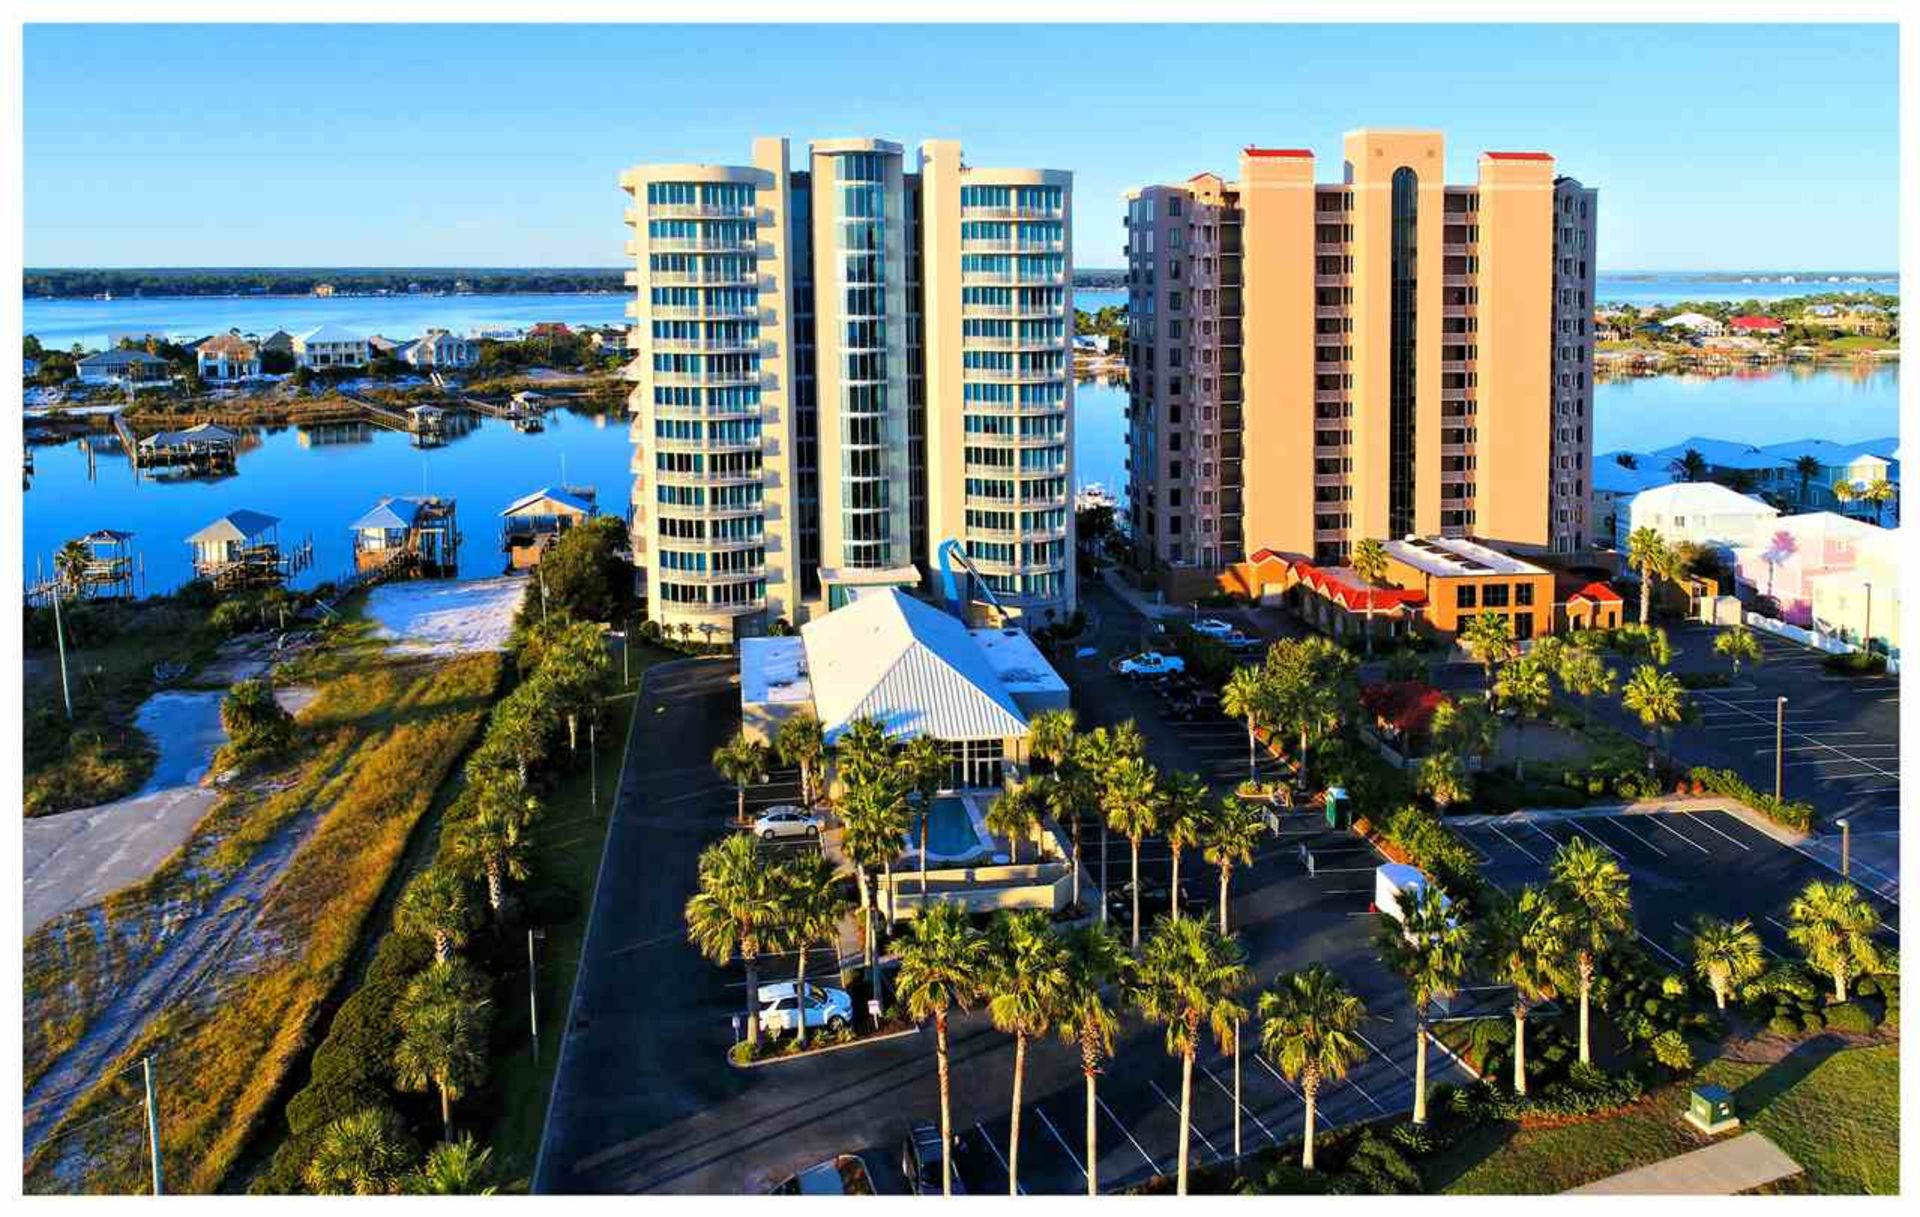 Orange Beach Condos from $600,000 to $1,000,000